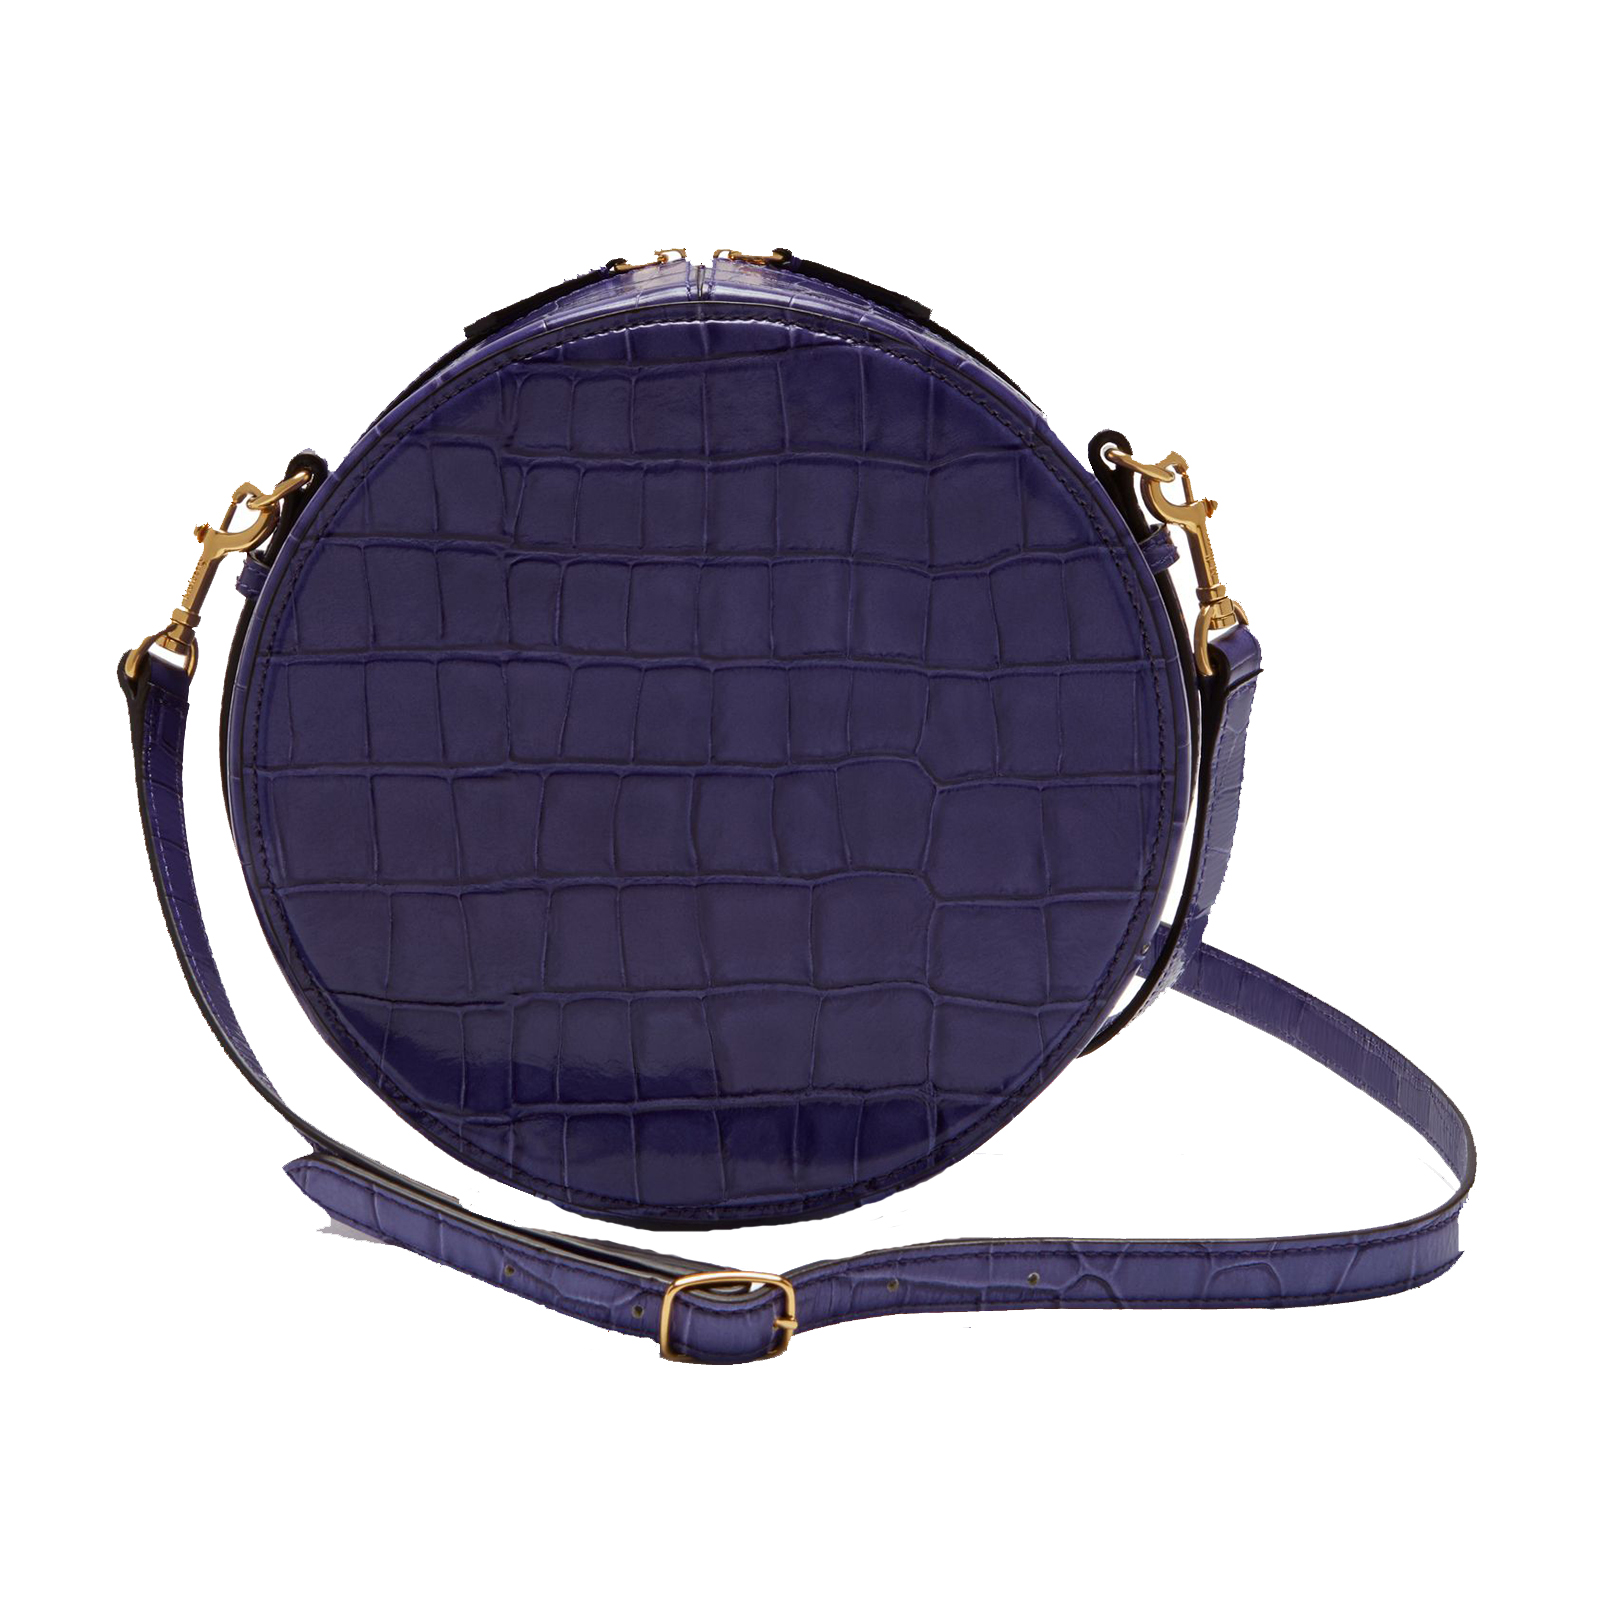 Image of Mulberry croc bag